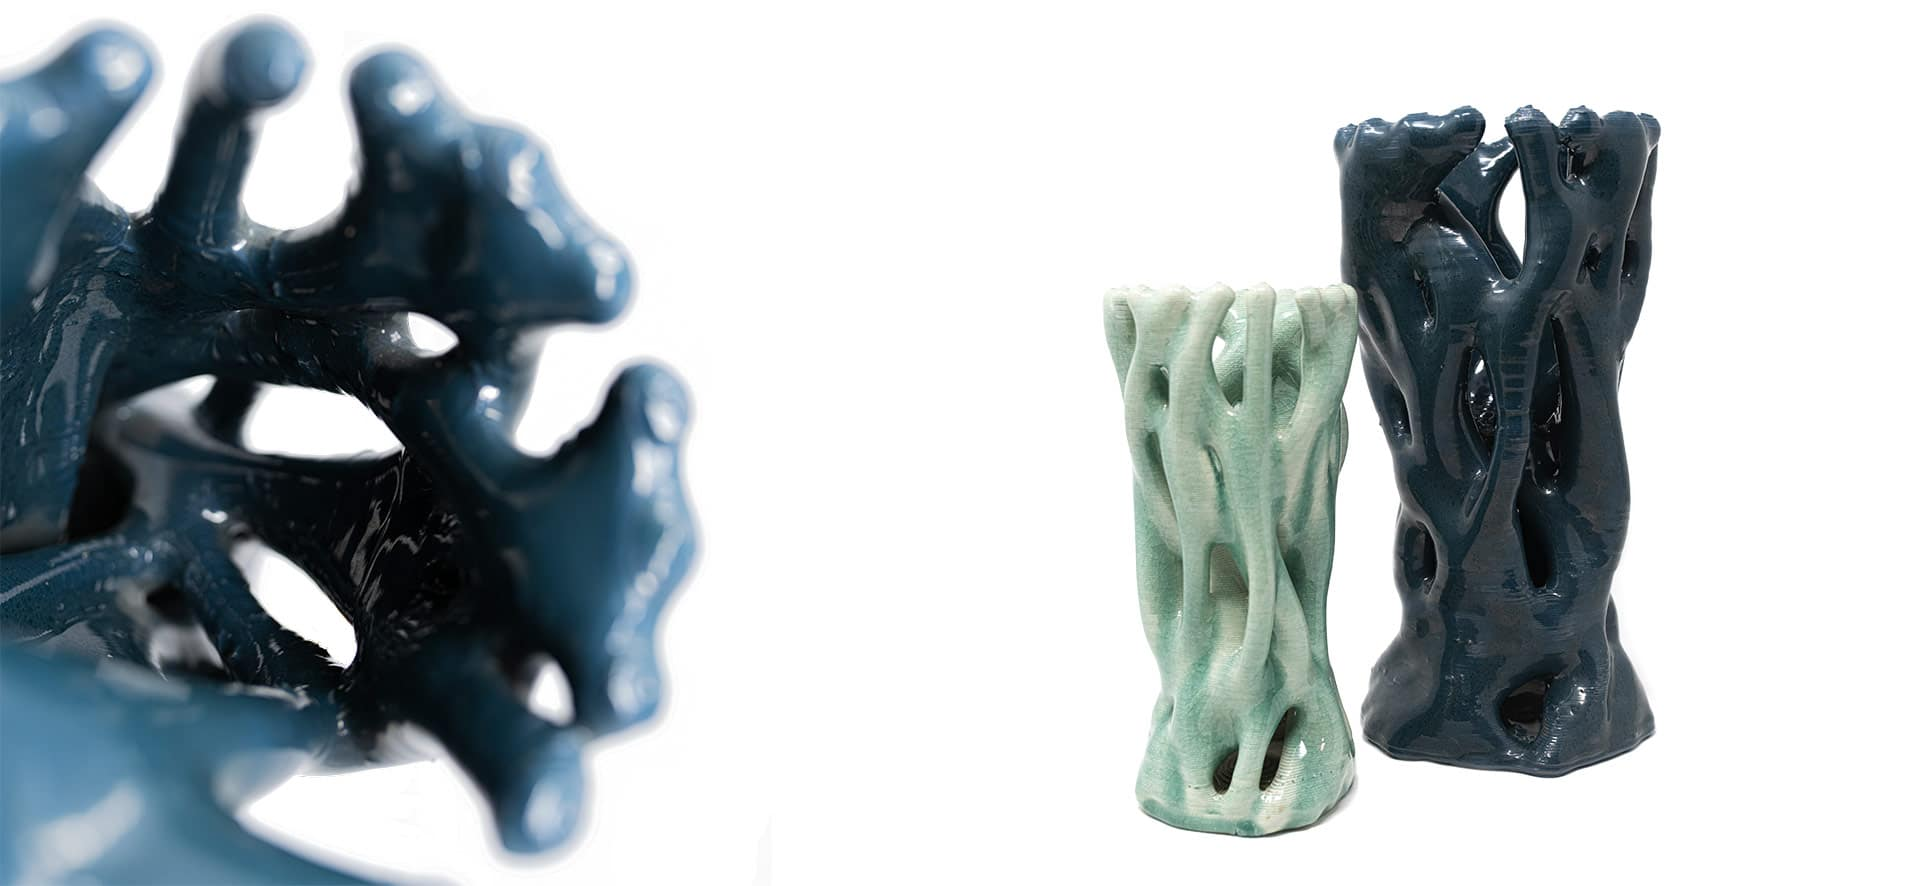 A Mediterranean way to computational furniture design and 3D printing